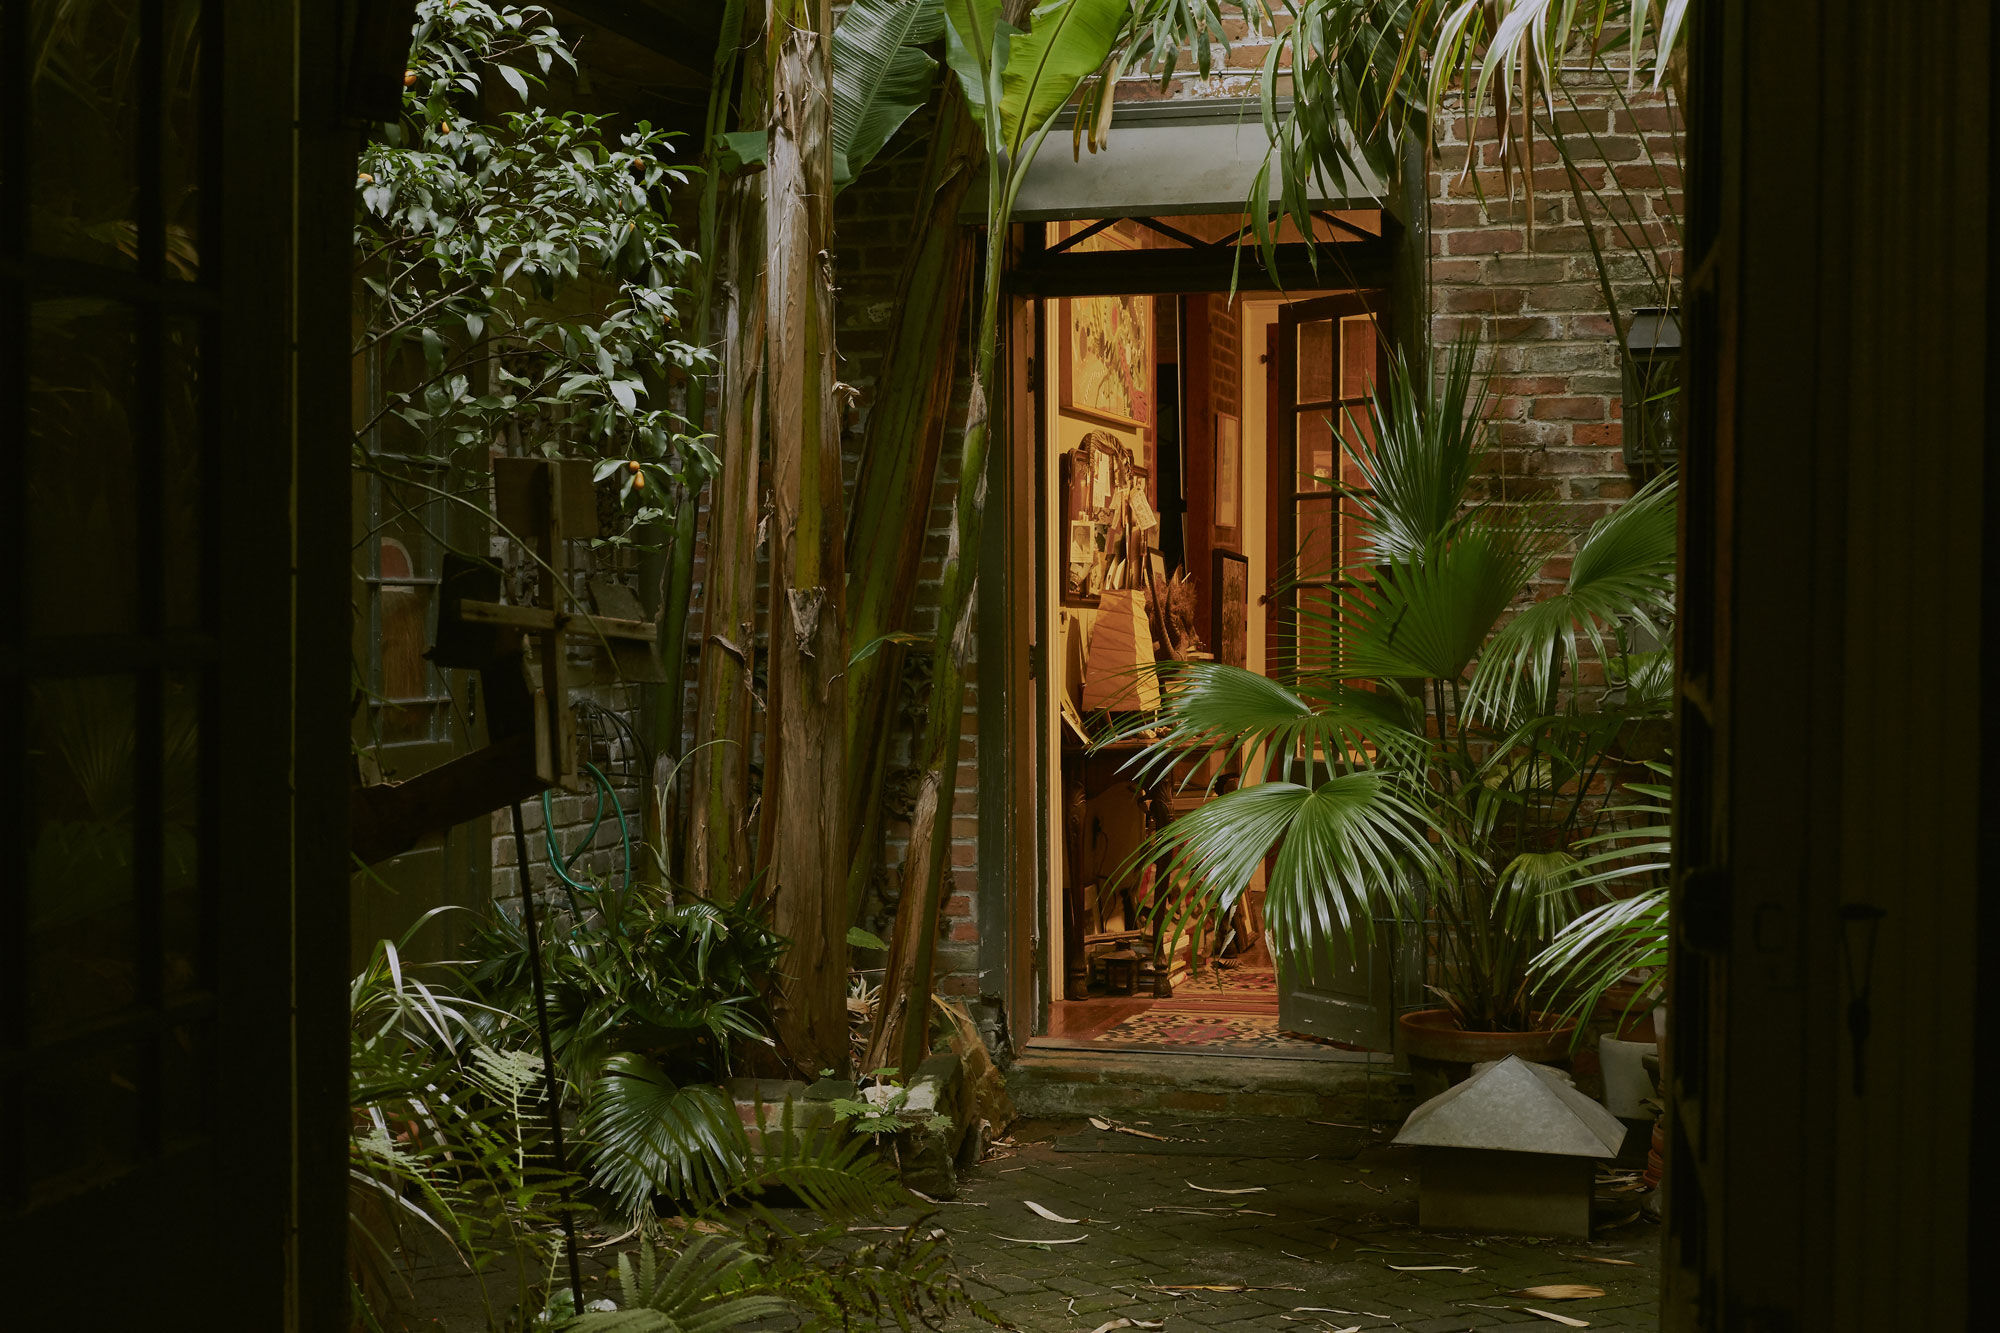 At the center of Fagaly's home in the French Quarter of New Orleans, a courtyard demonstrates the power of the spell that so many fall under in this city. Birds of paradise and palmettos stake out the edges of garden punctuated by French doors that lead into the space, providing a respite from the busy streets. Photo by Michael Adno for Artsy.